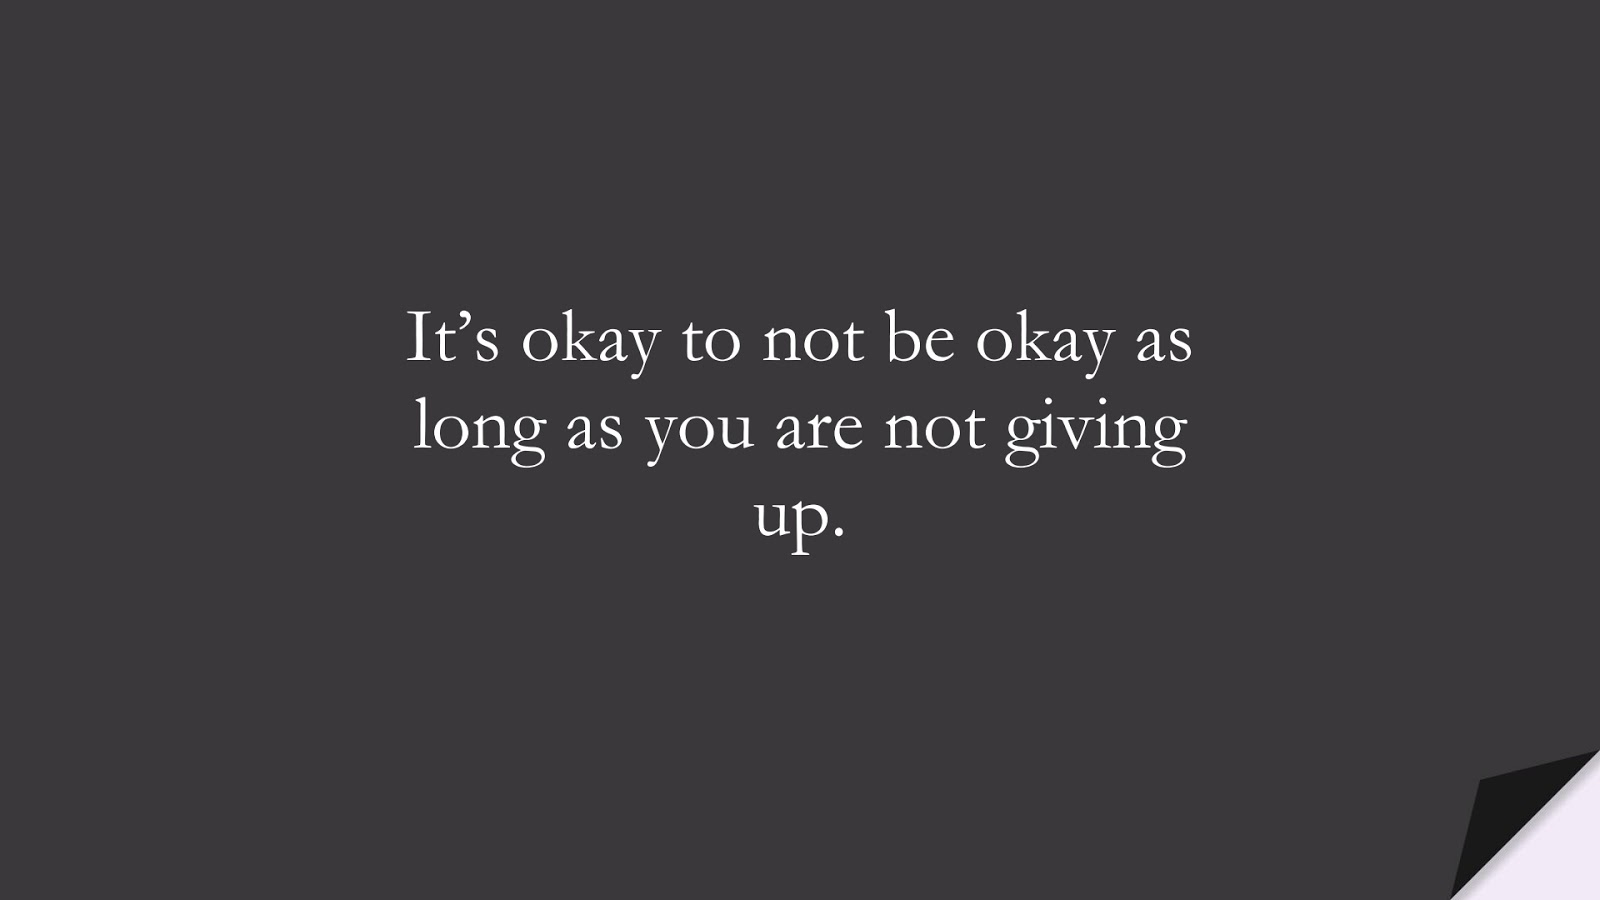 It's okay to not be okay as long as you are not giving up.FALSE